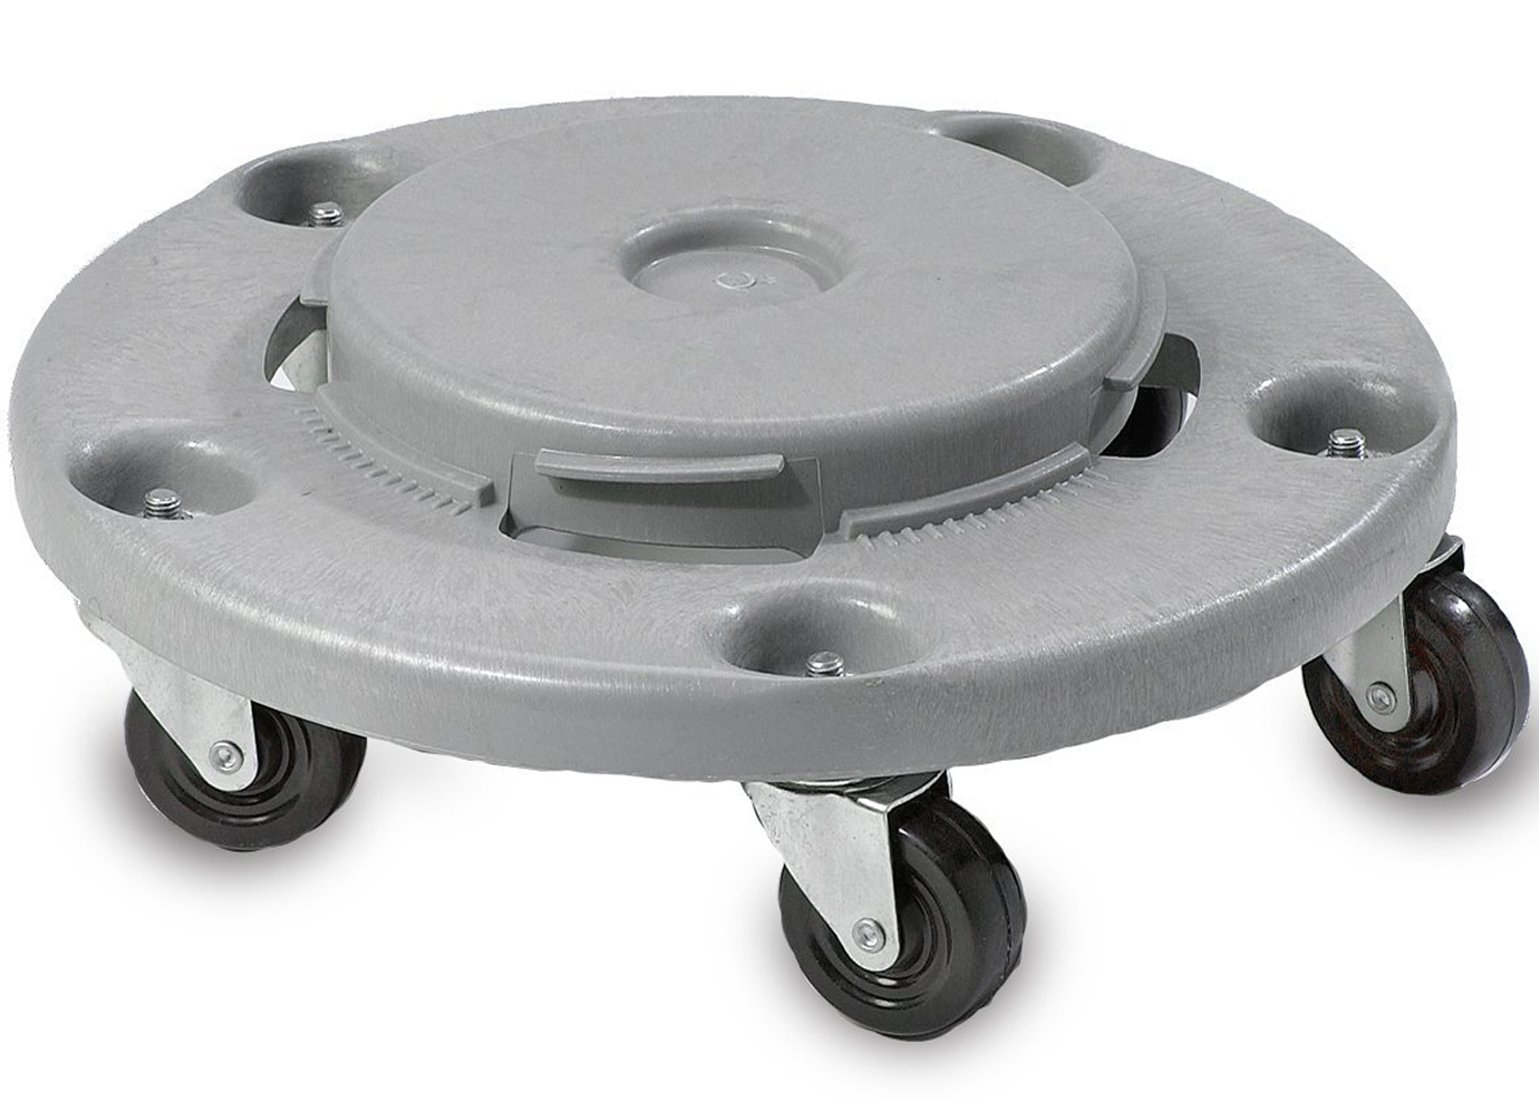 Janico 1040 Trash Can Dolly - Heavy Duty Bolted Casters, Round, Grey, Fits 20 32 44 55 Gallon Containers